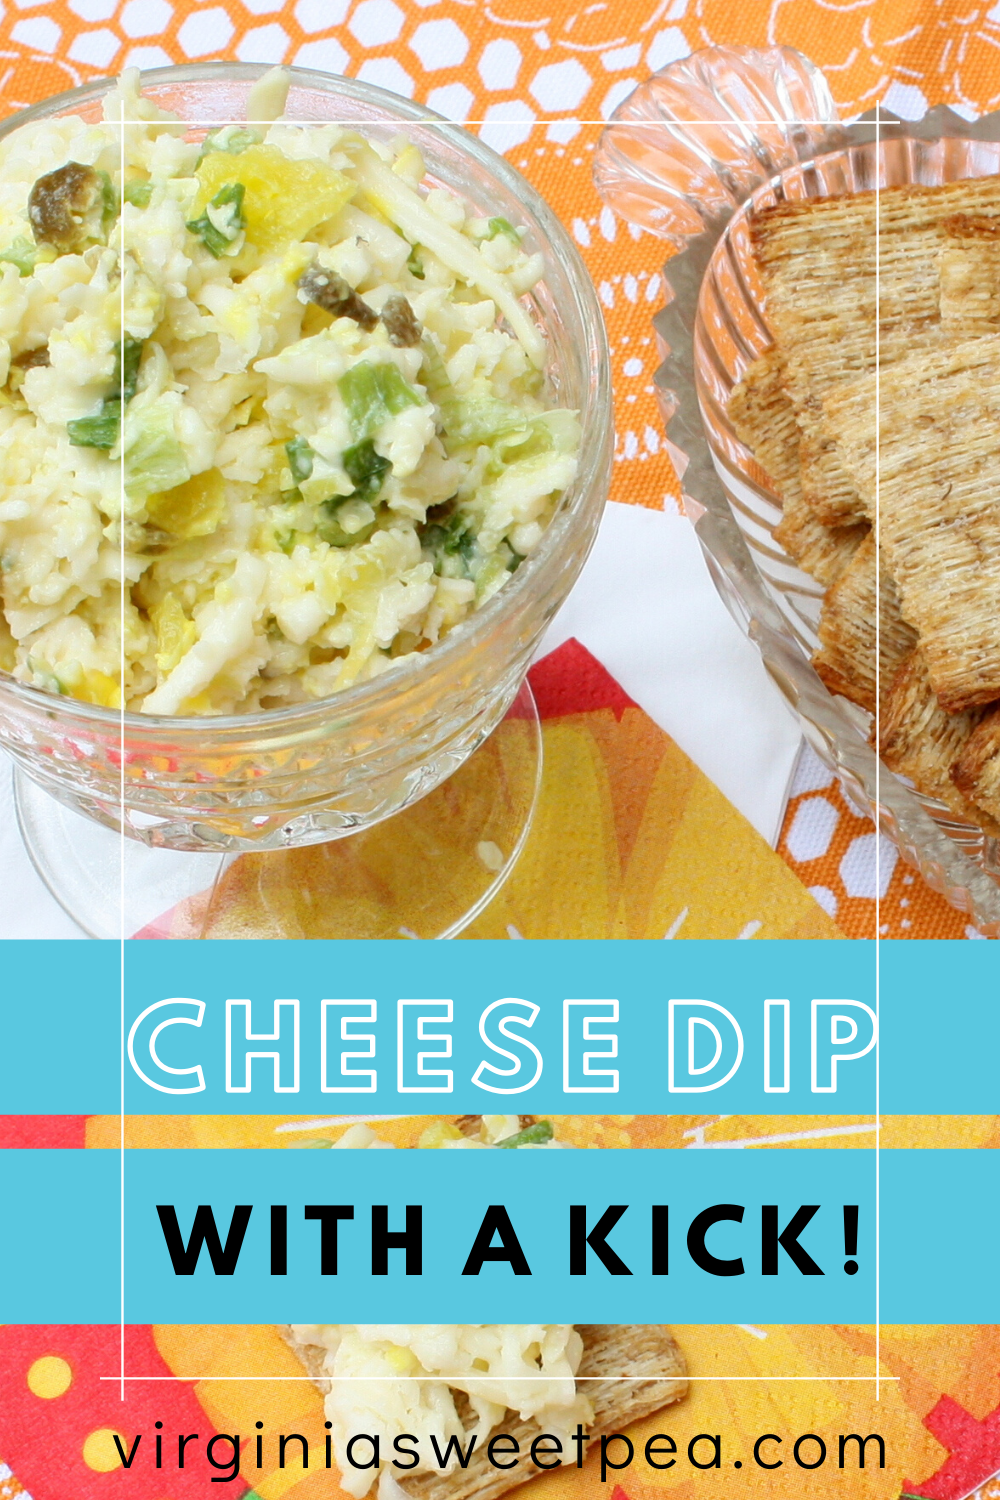 Cheese Dip - This dip made with swiss cheese, green onion, jalapenos and pepperoncinis is always a hit at parties. Serve it on crackers, with Frito dippers, or on a baked potato. #cheesedip #diprecipe #cheesespread  via @spaula